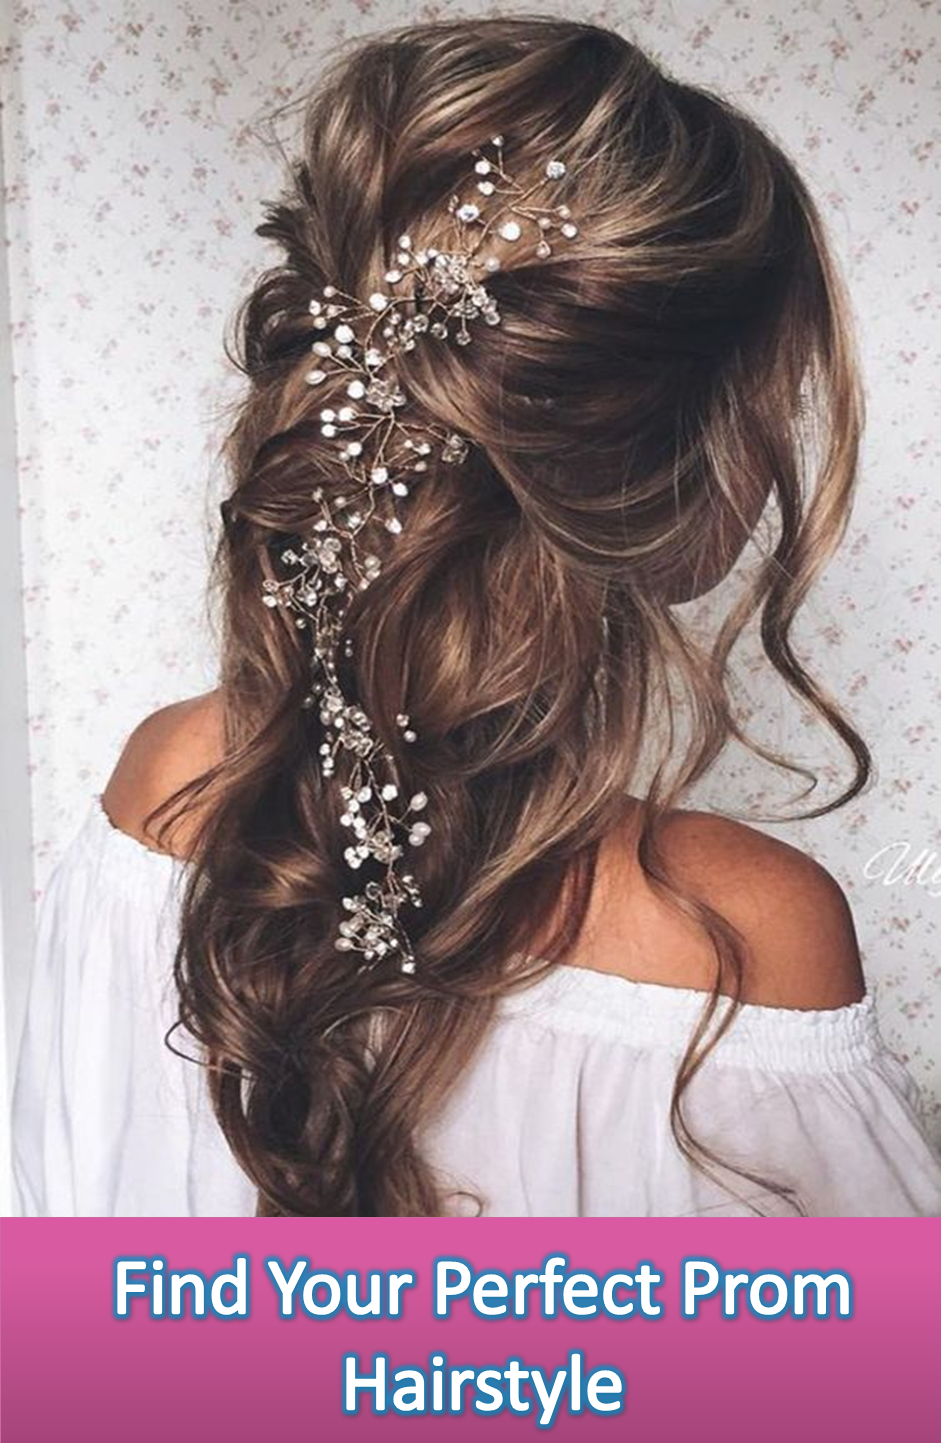 Find your perfect prom hairstyle for fall to stand out in the crowd